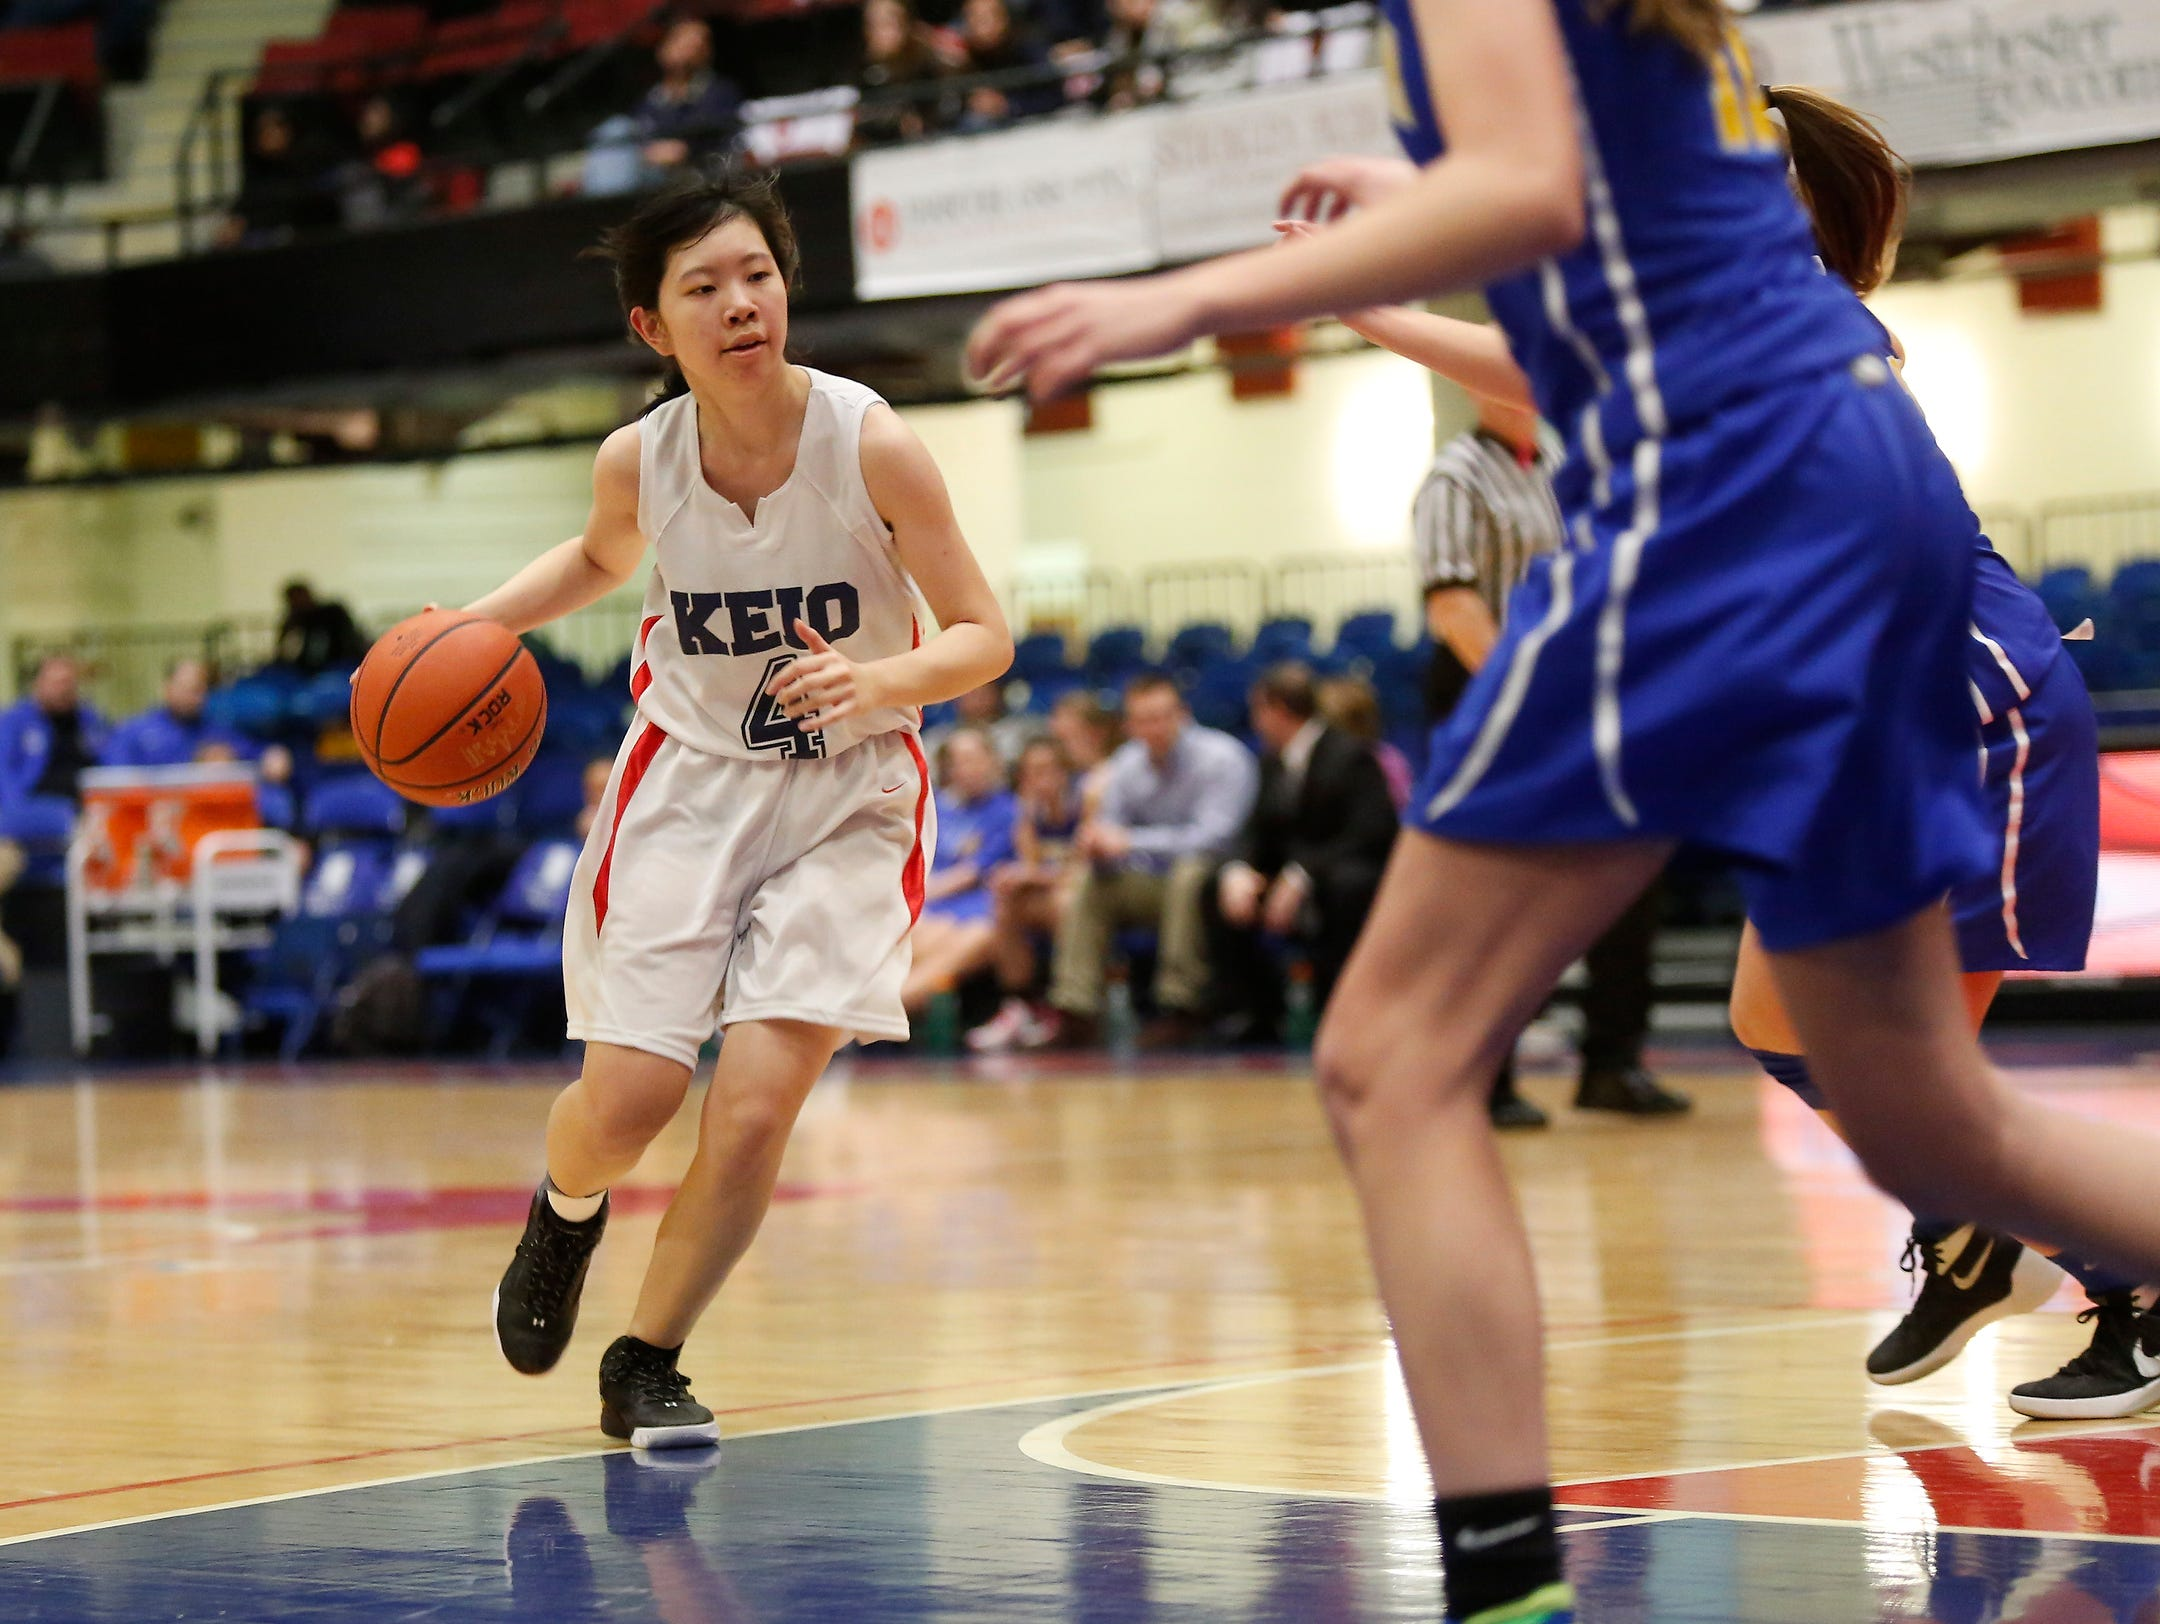 Keio defeats North Salem 46-31 in the class C semi-final basketball game at the Westchester County Center in White Plains on Saturday, February 27, 2016.